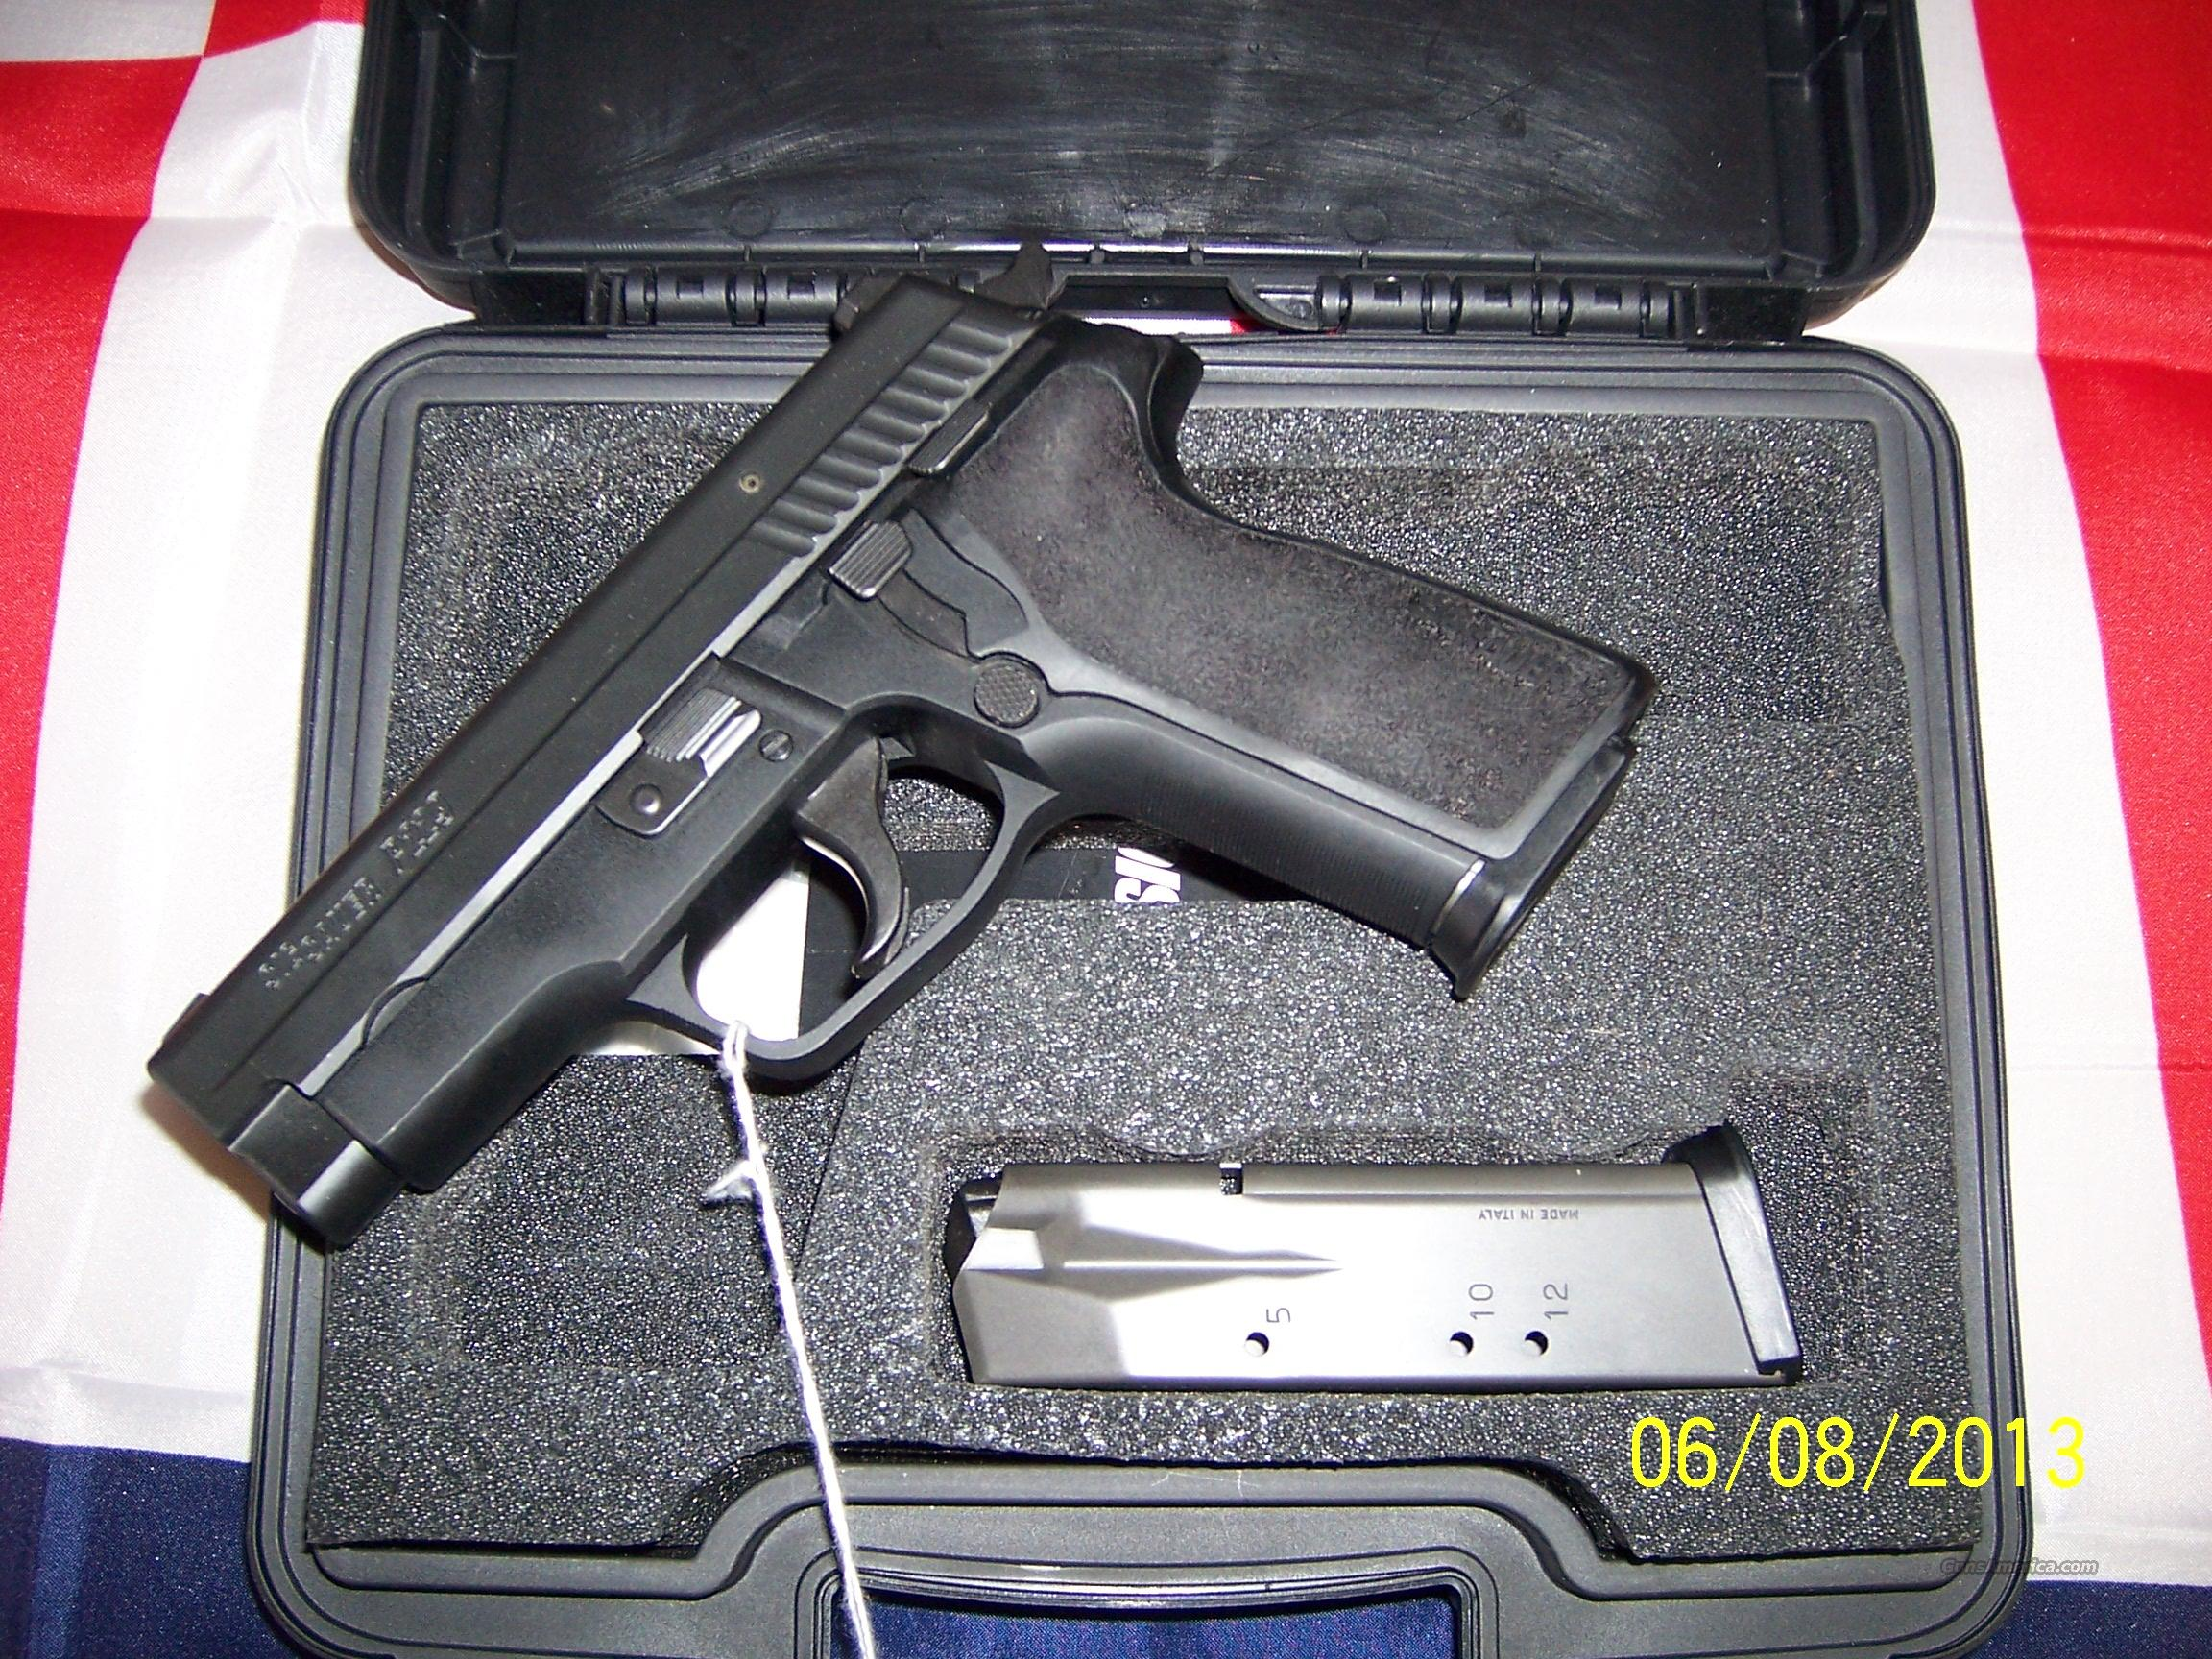 sig sauer p229 40 2 mags  Guns > Pistols > Sig - Sauer/Sigarms Pistols > P229